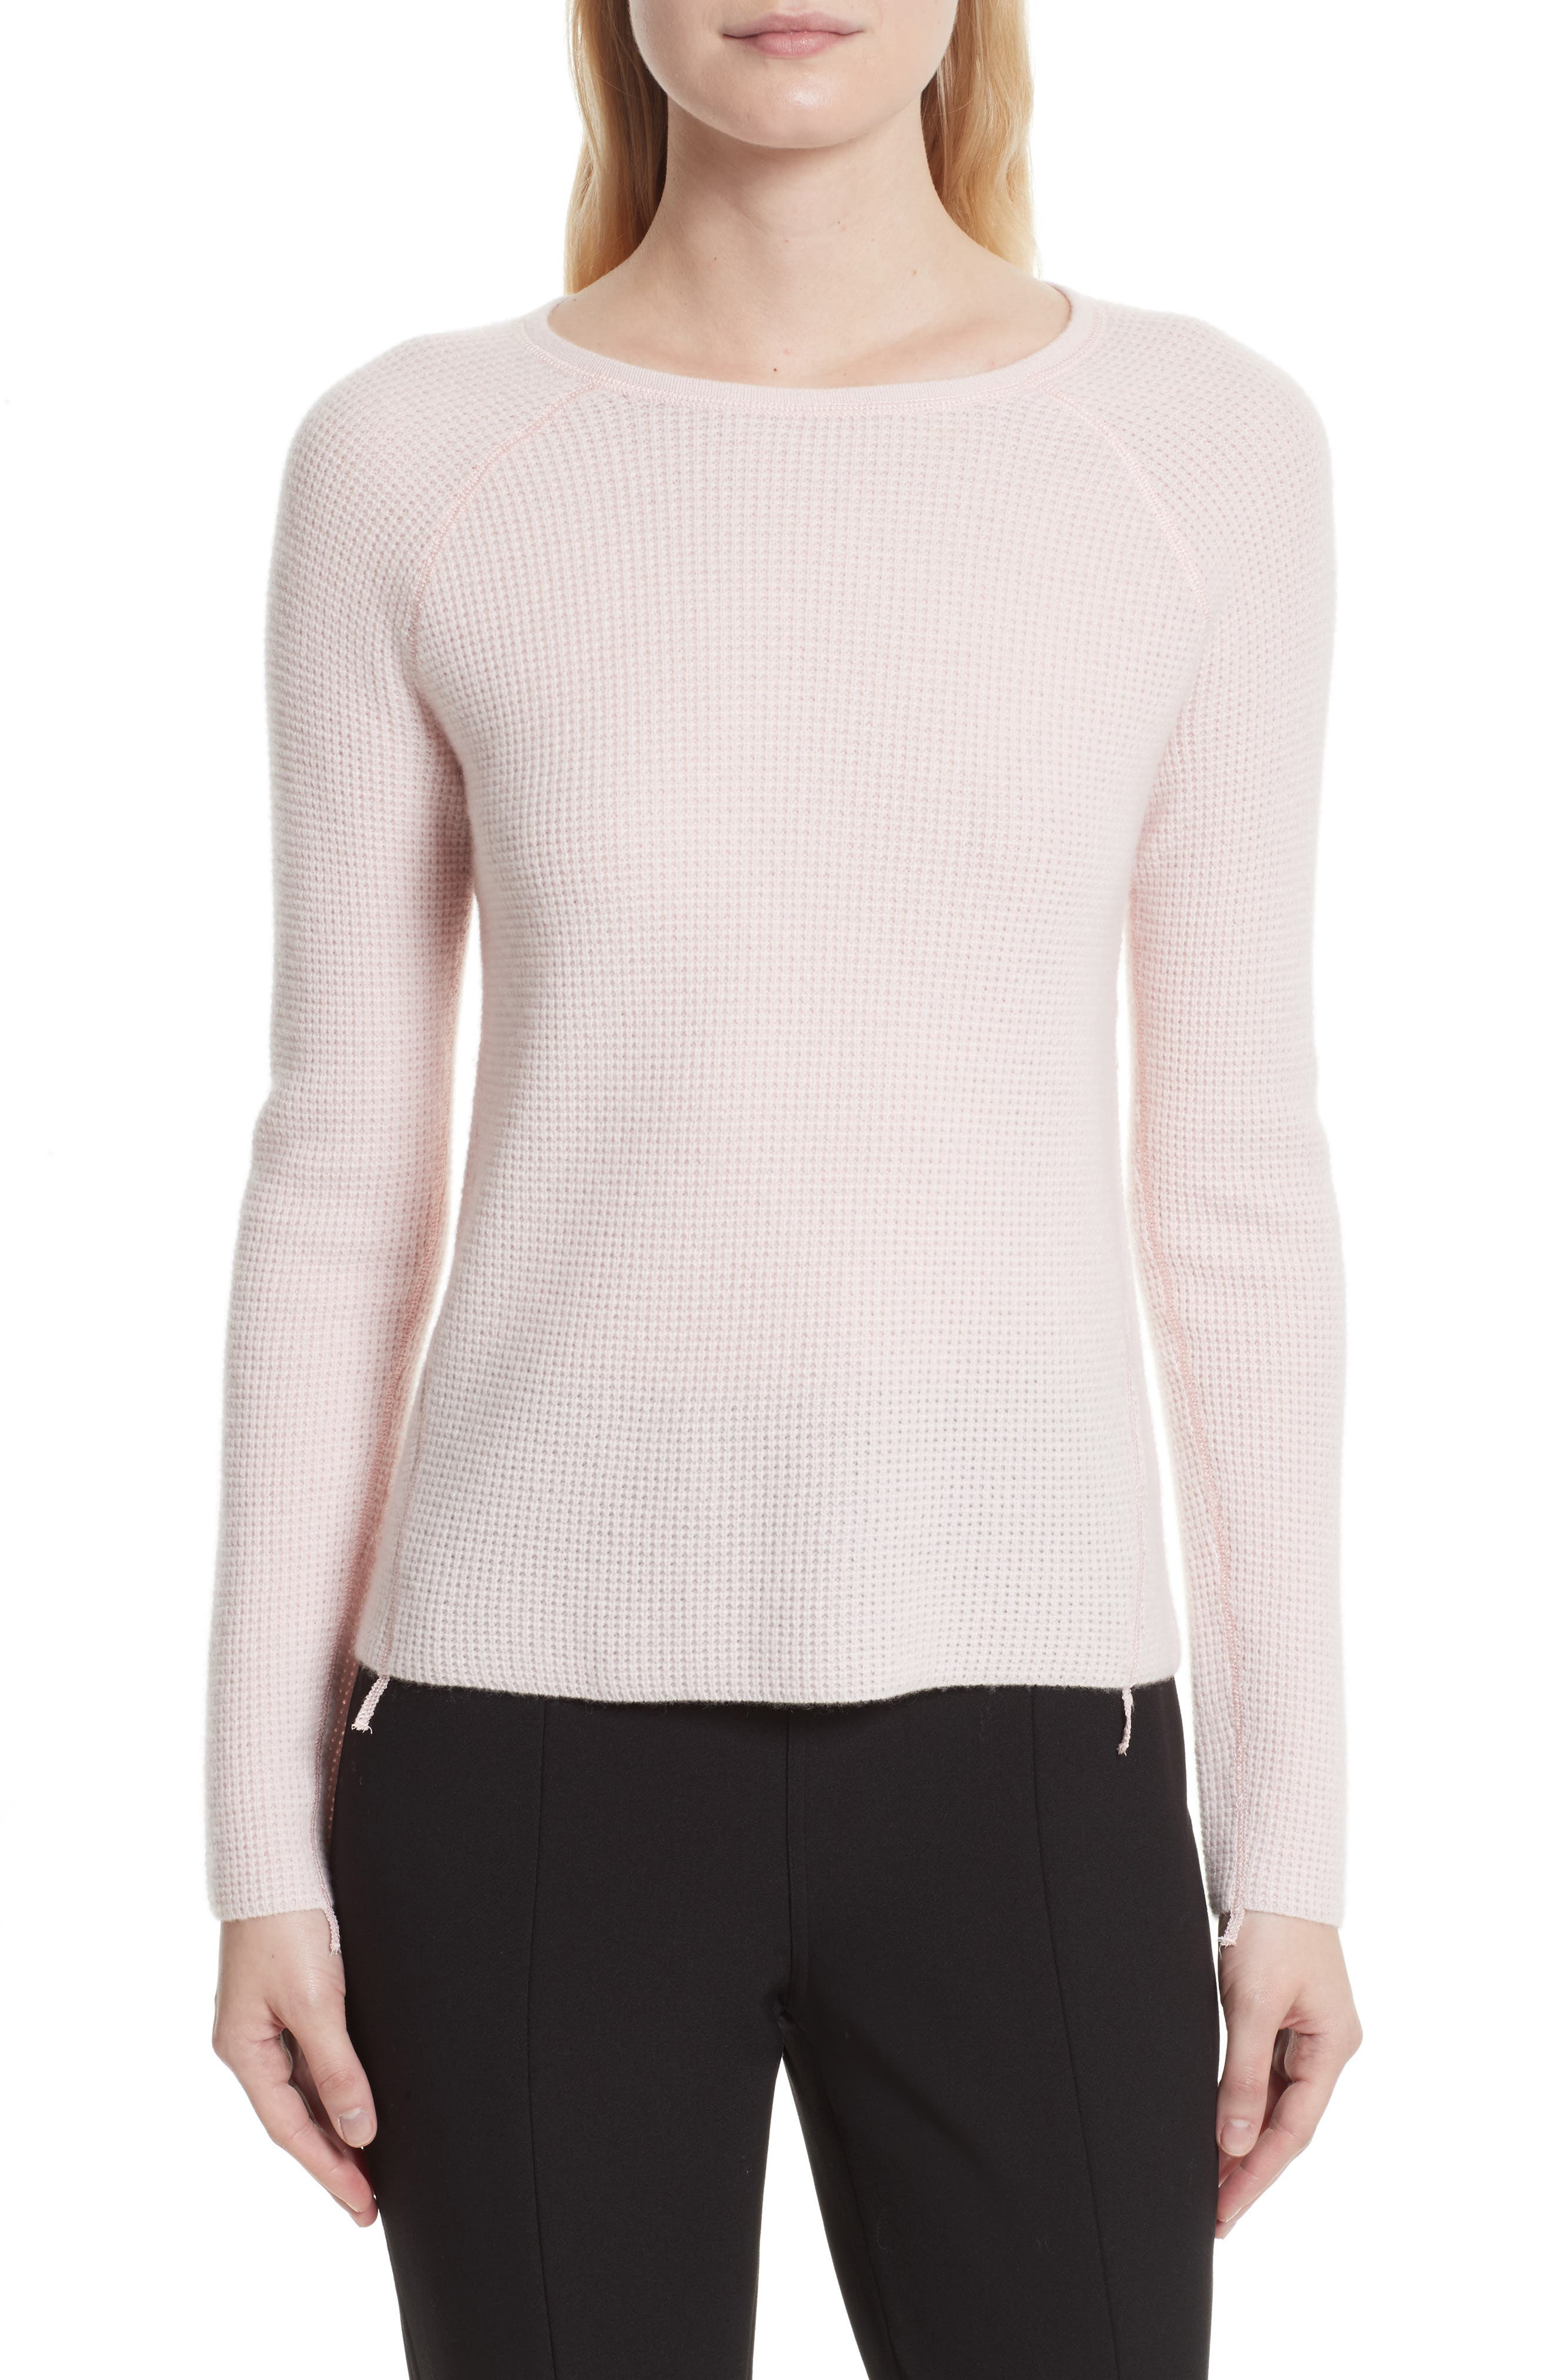 Alternate Image 1 Selected - Elizabeth and James Karina Waffle Knit Cashmere Sweater